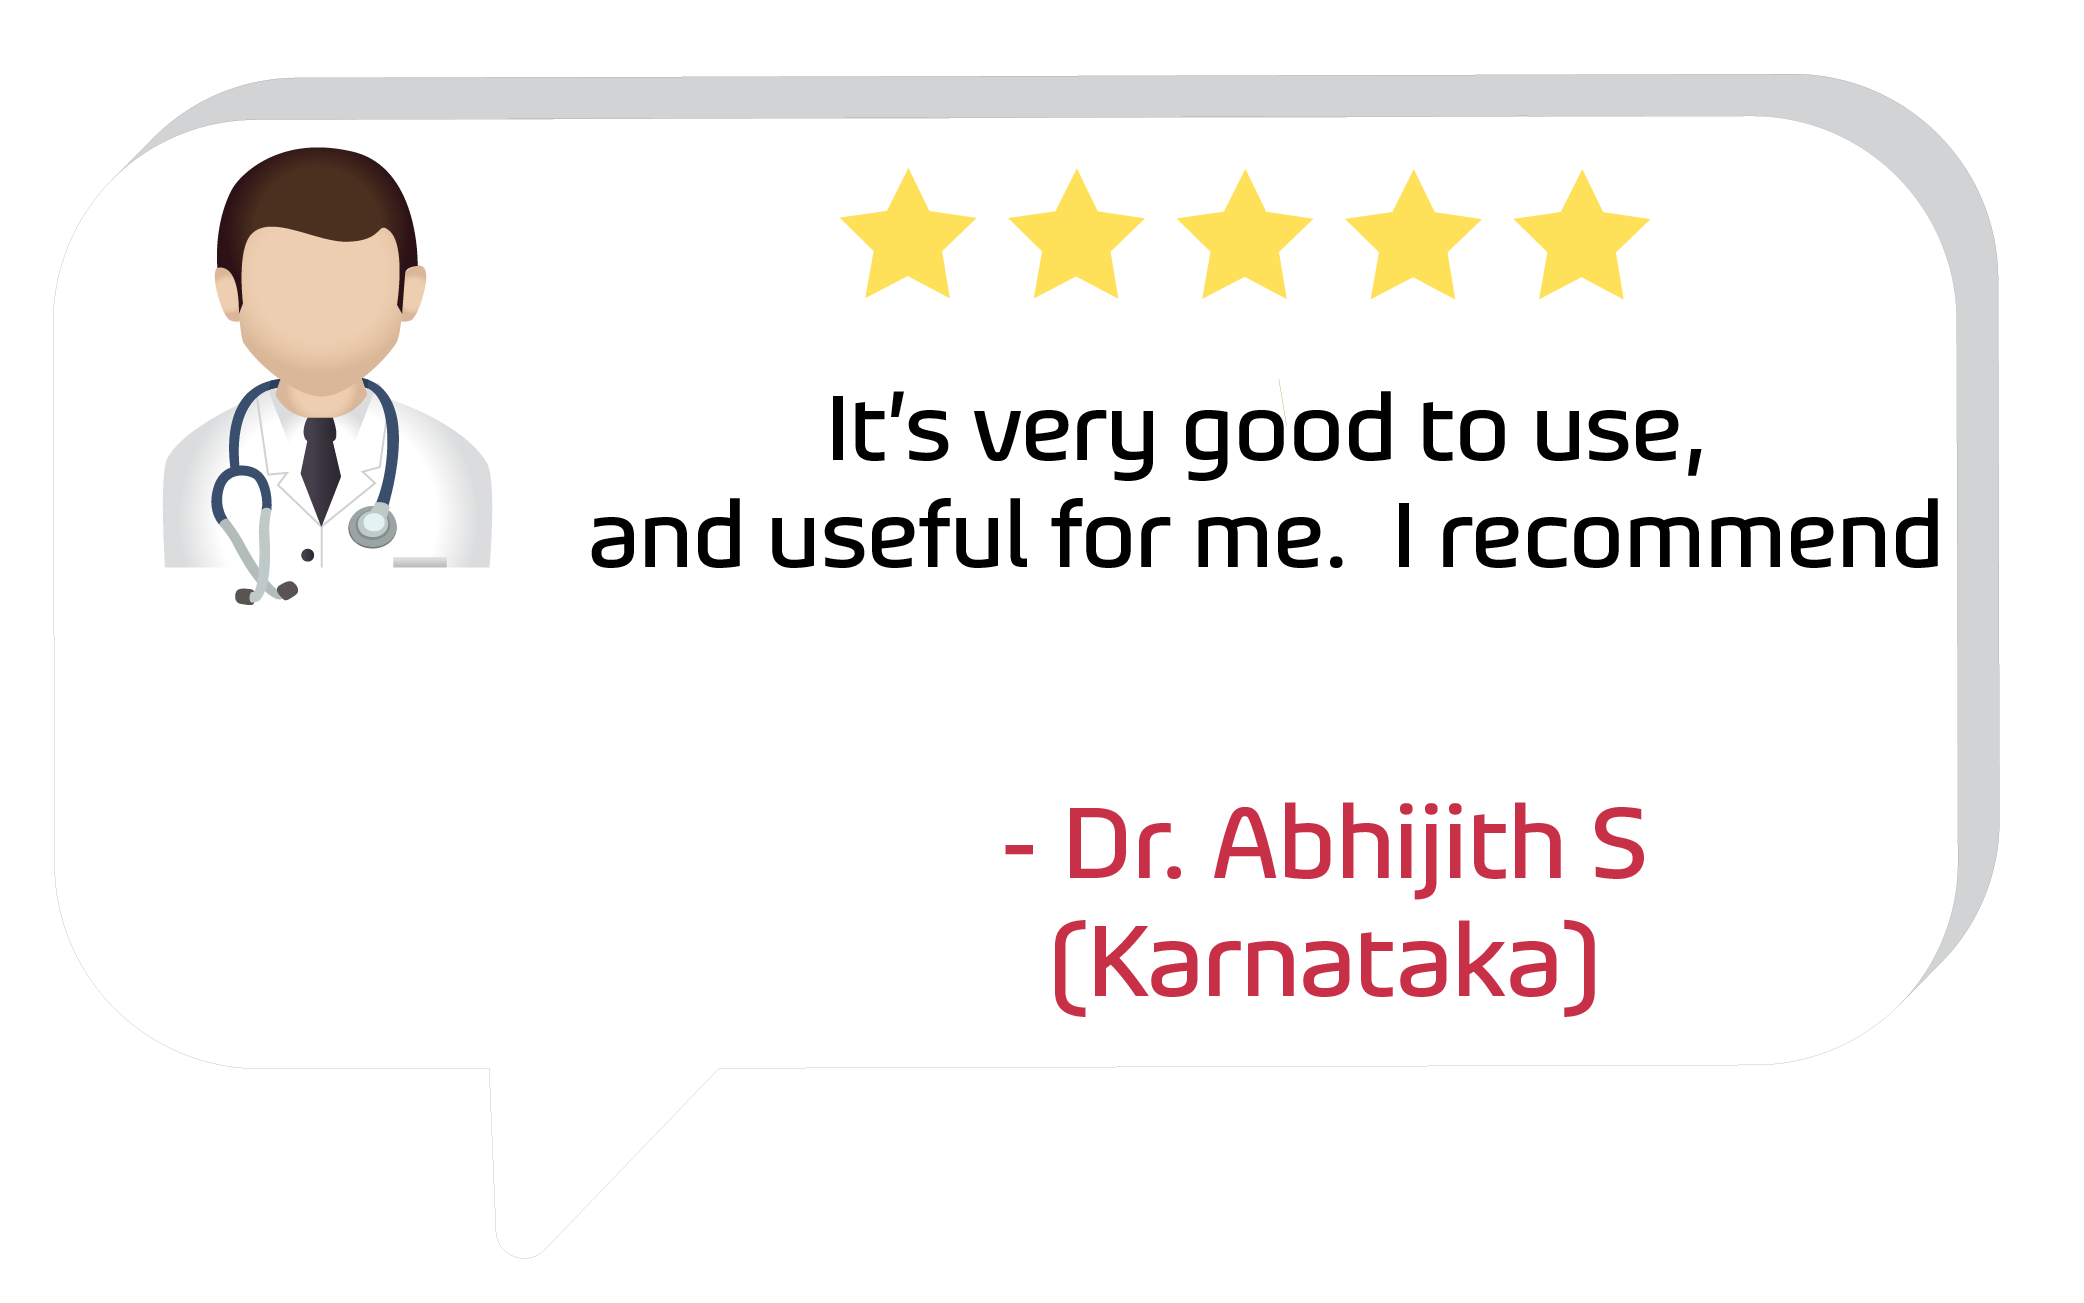 Dr. Abhijith